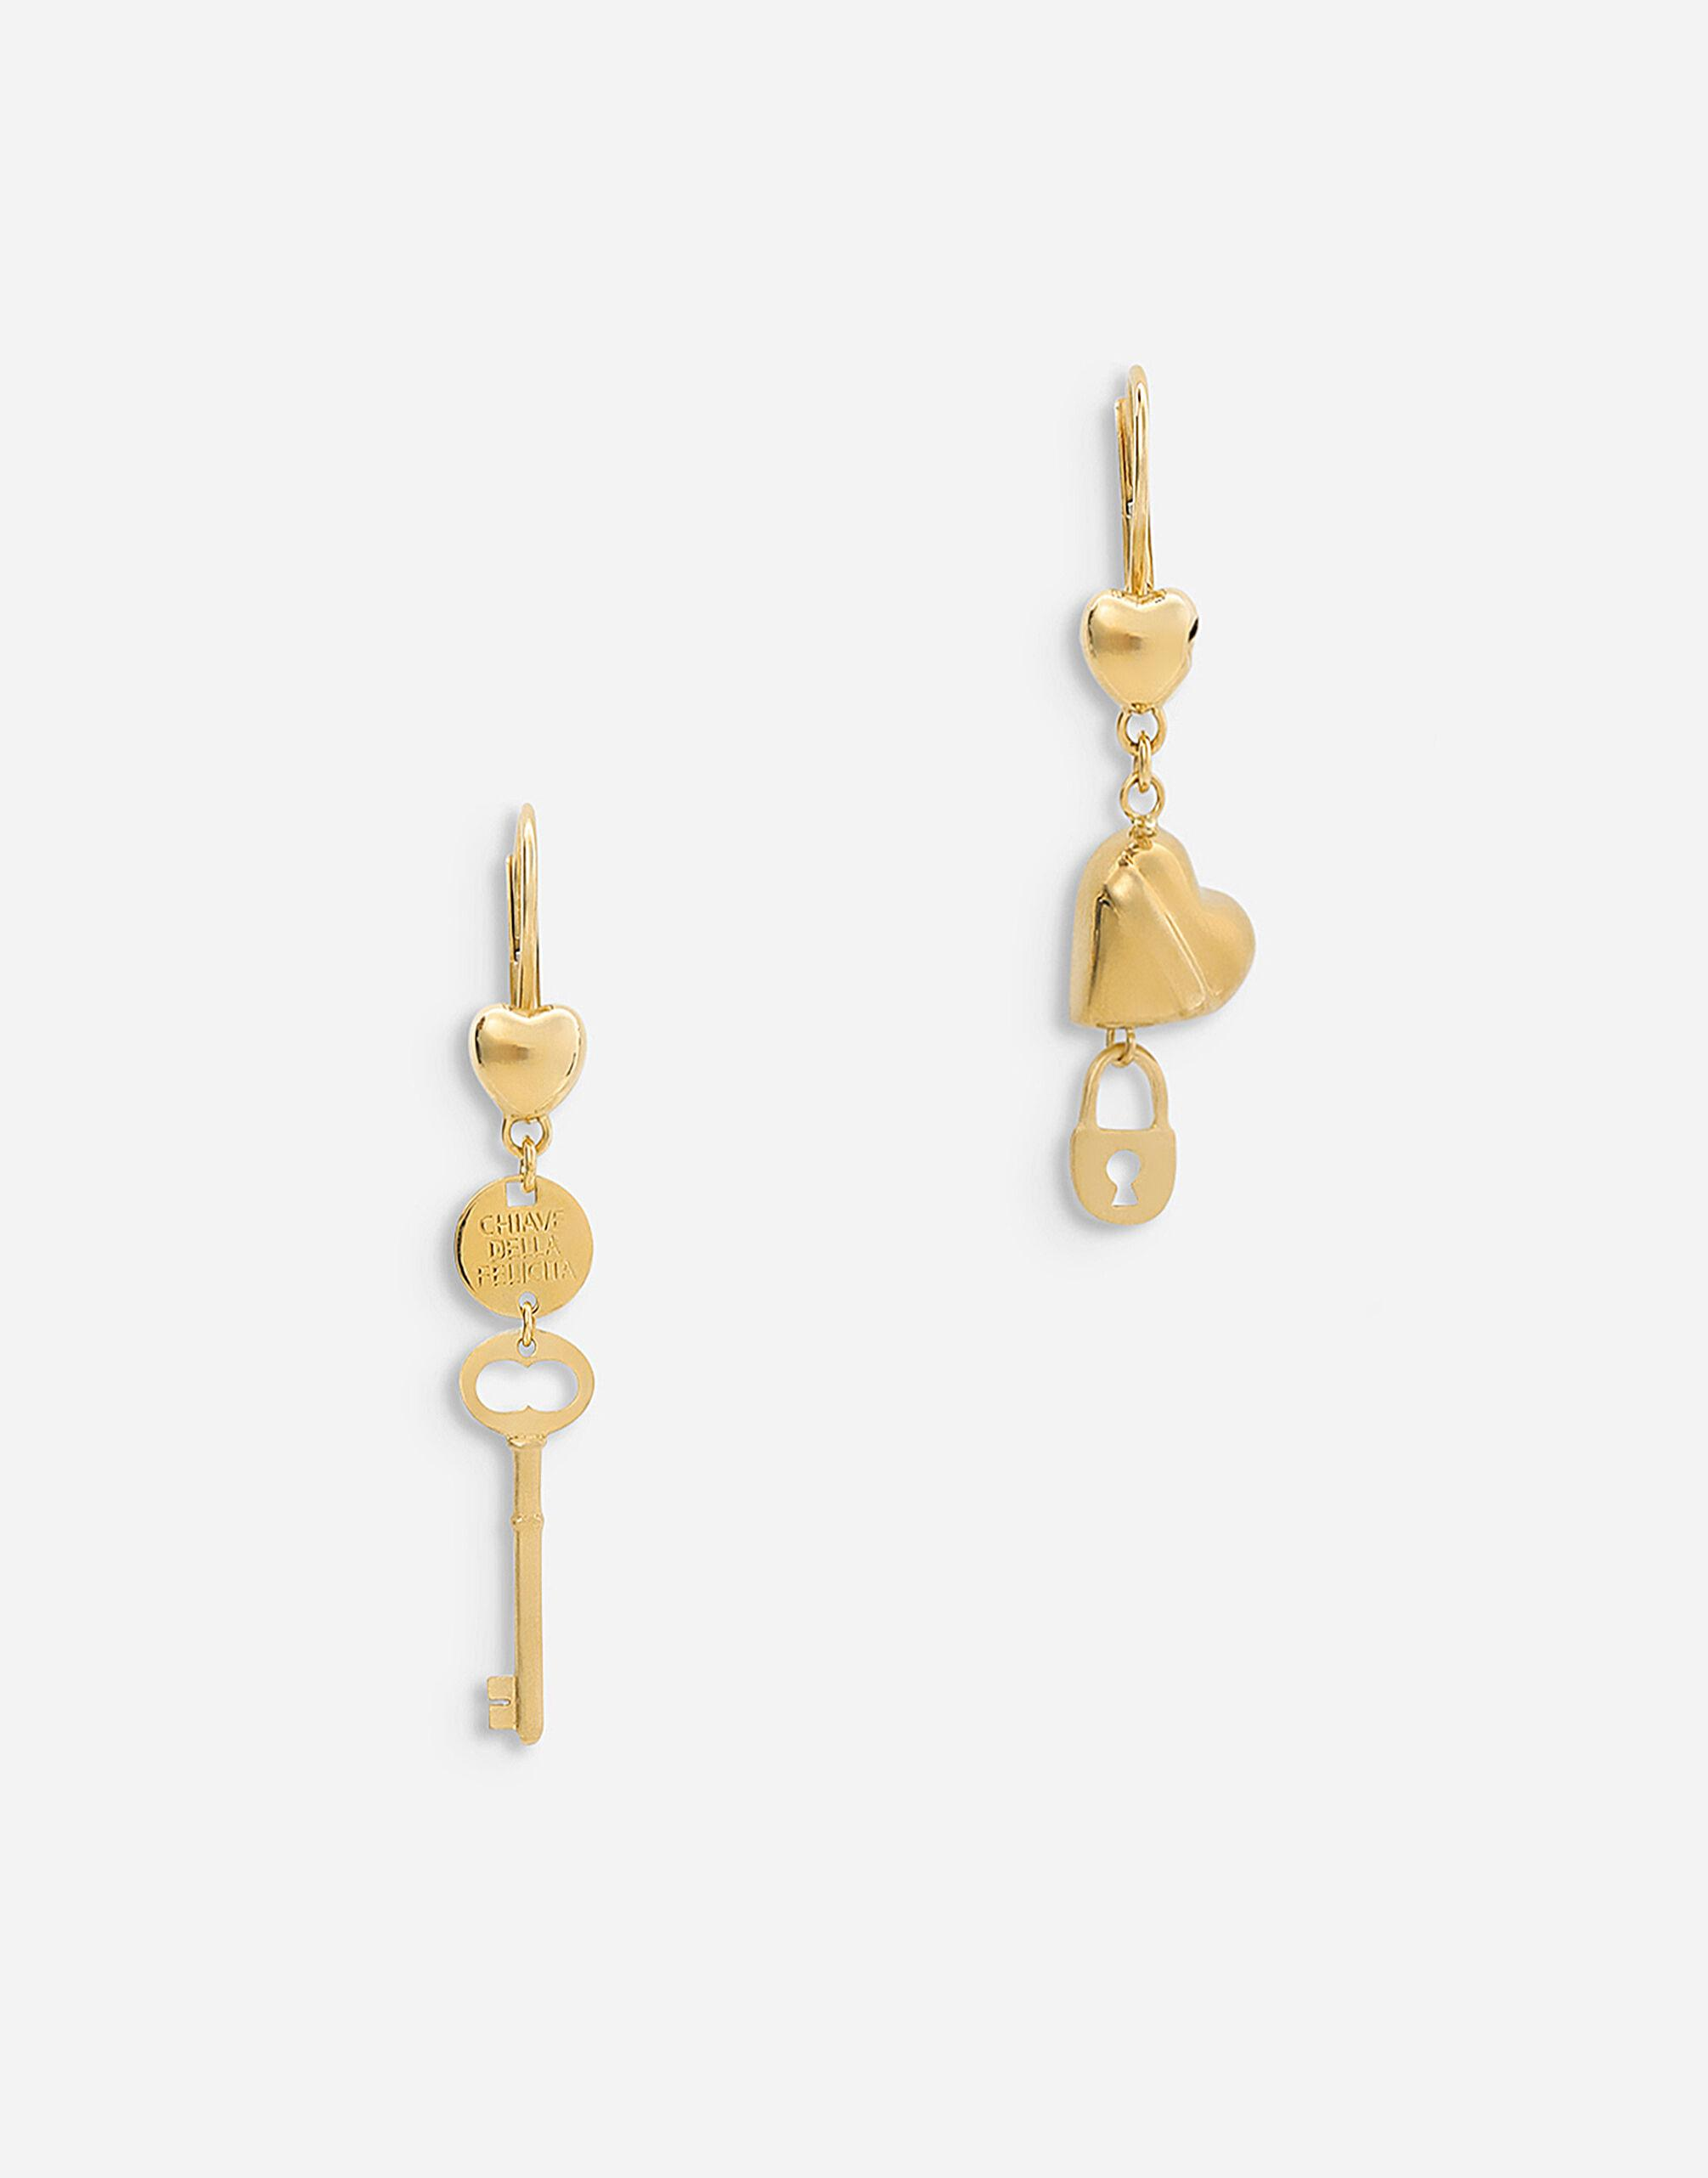 Good Luck earrings in yellow 18kt gold with heart, padlock and key